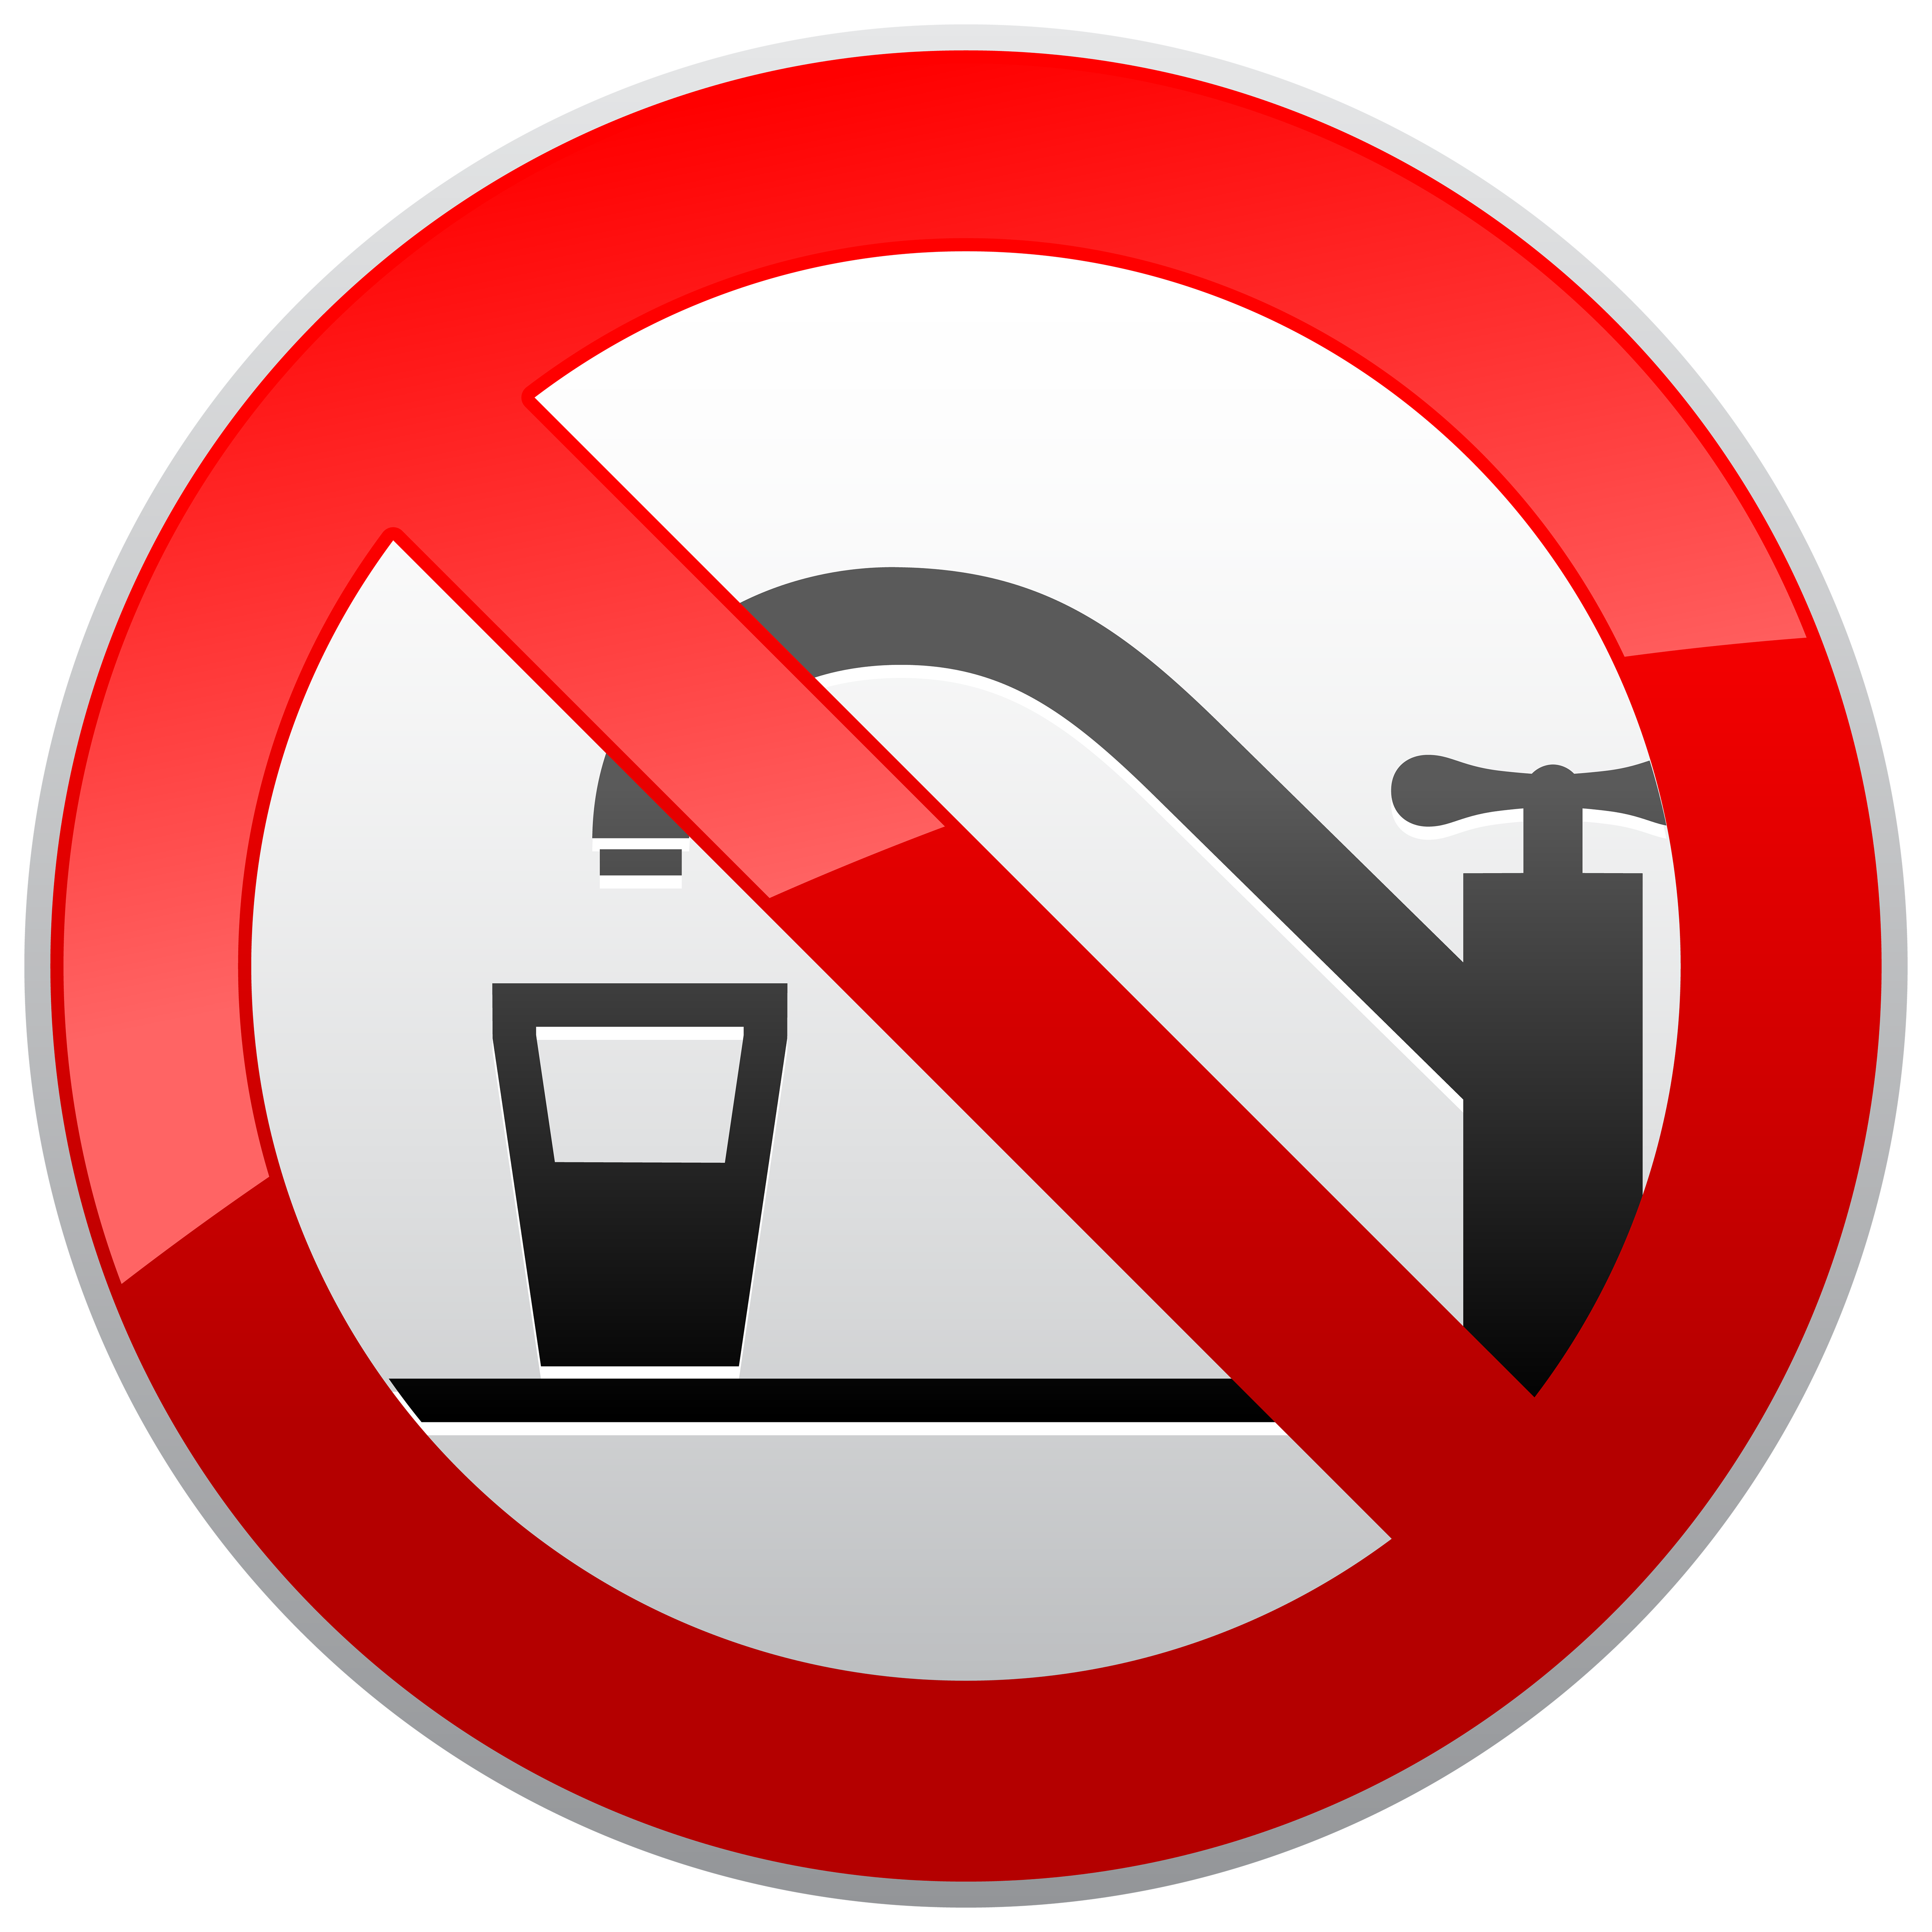 Planets clipart water. Not drinking prohibition sign